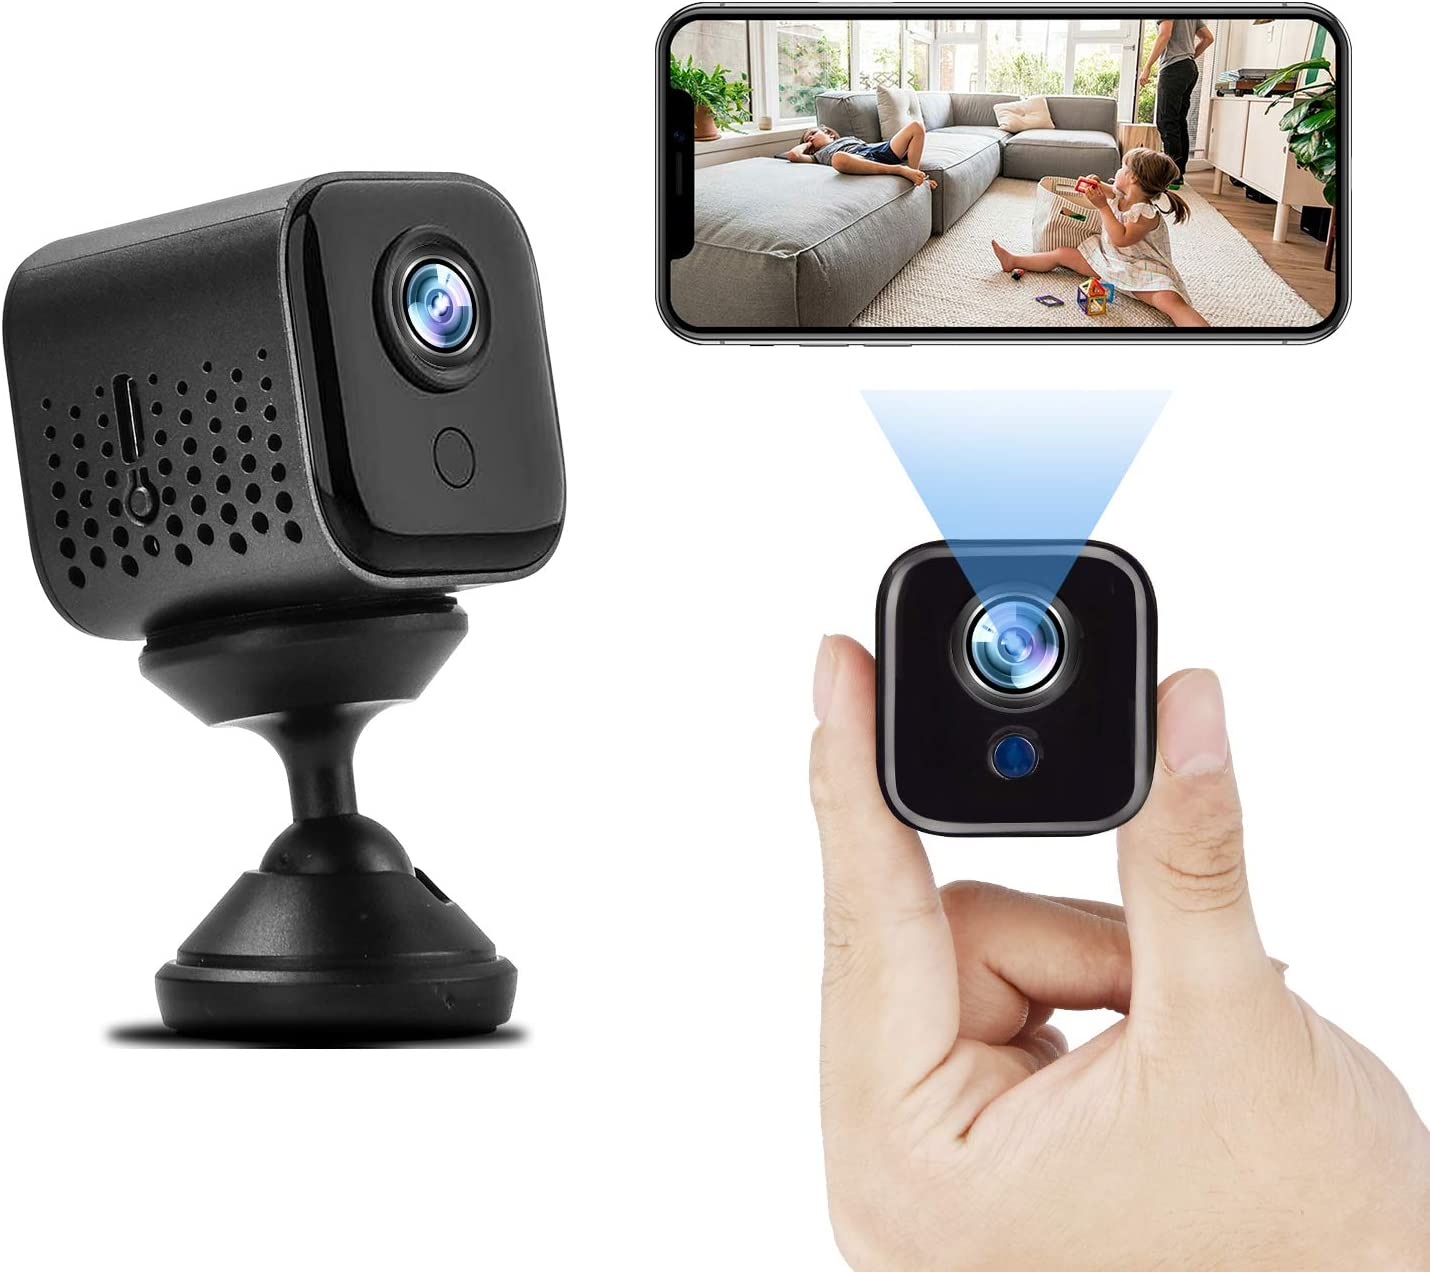 Hidden Camera Mini Wireless Camera, Full HD 1080P WiFi Small Camera Nanny Cam with Night Vision Motion Activation for Home Indoor Outdoor Office Car Use, Portable Security Camera